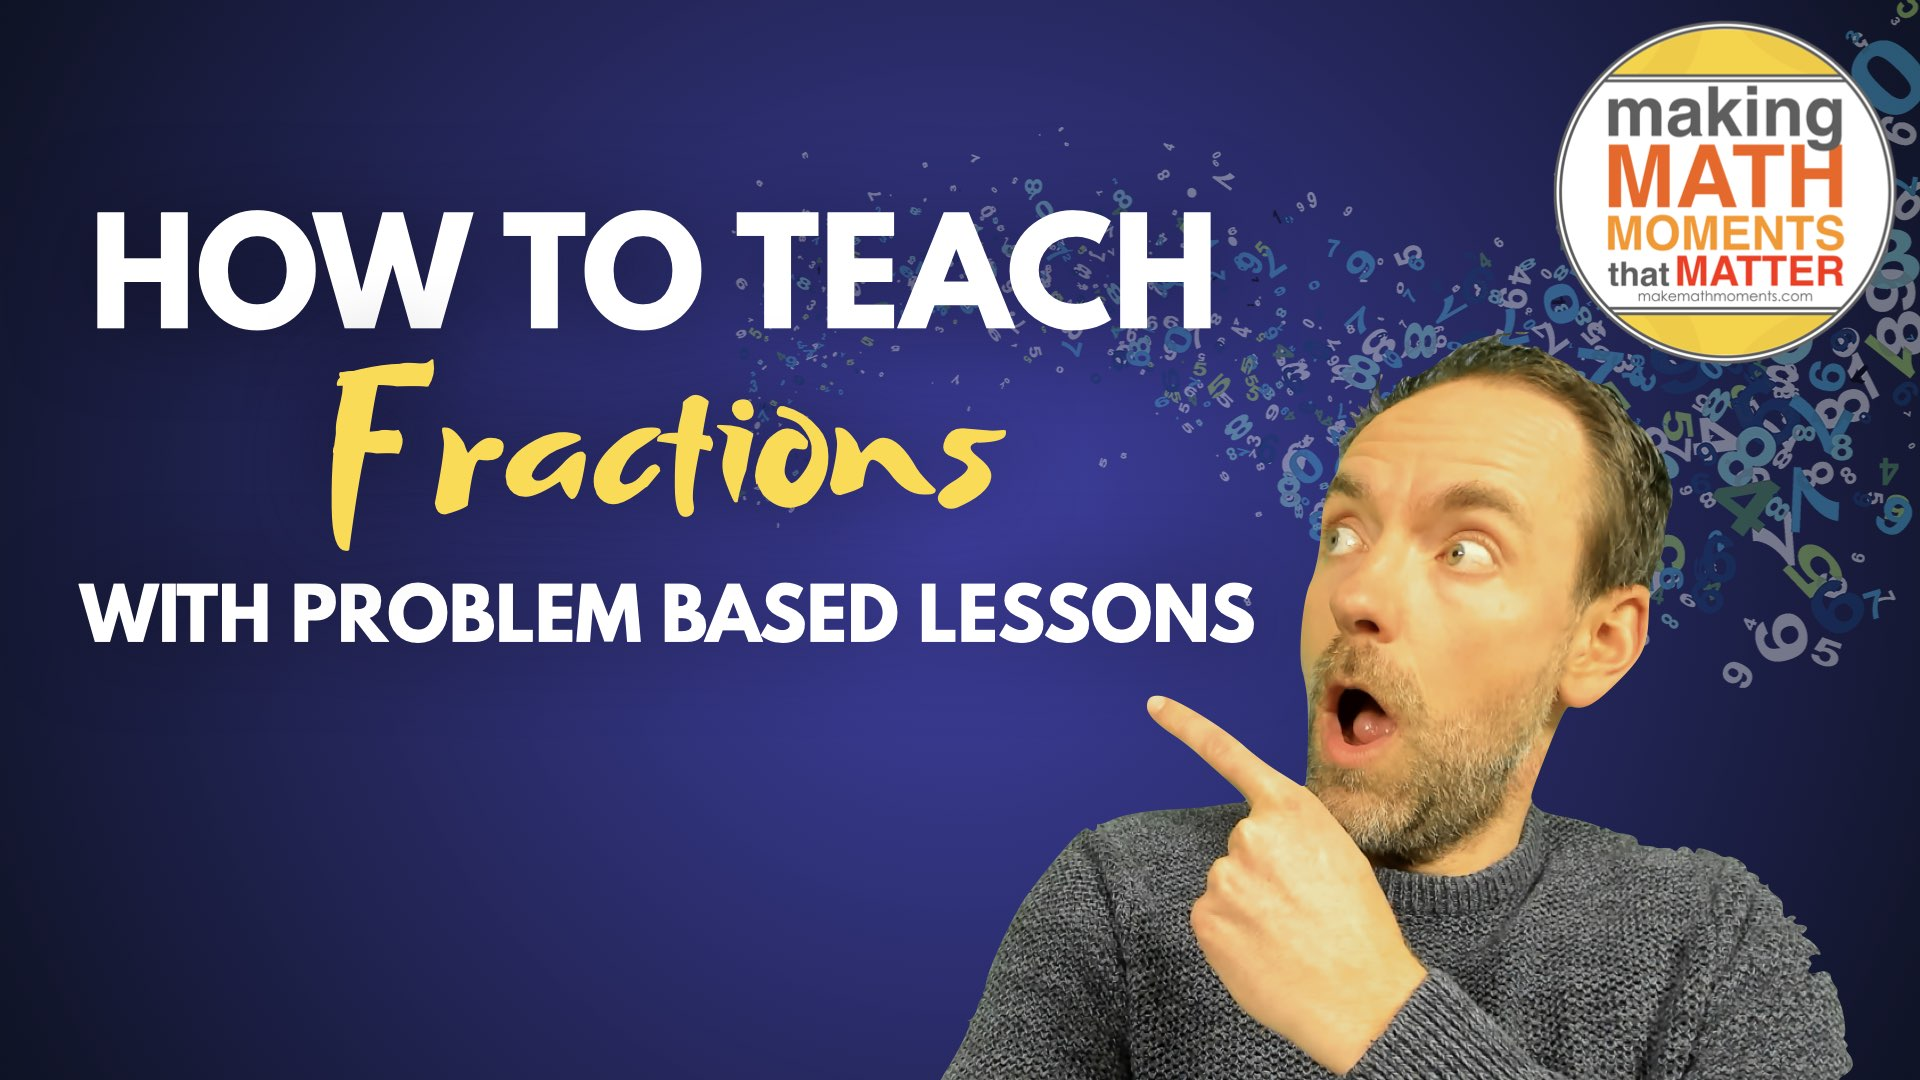 How To Teach Fractions Through Problem Based Lessons